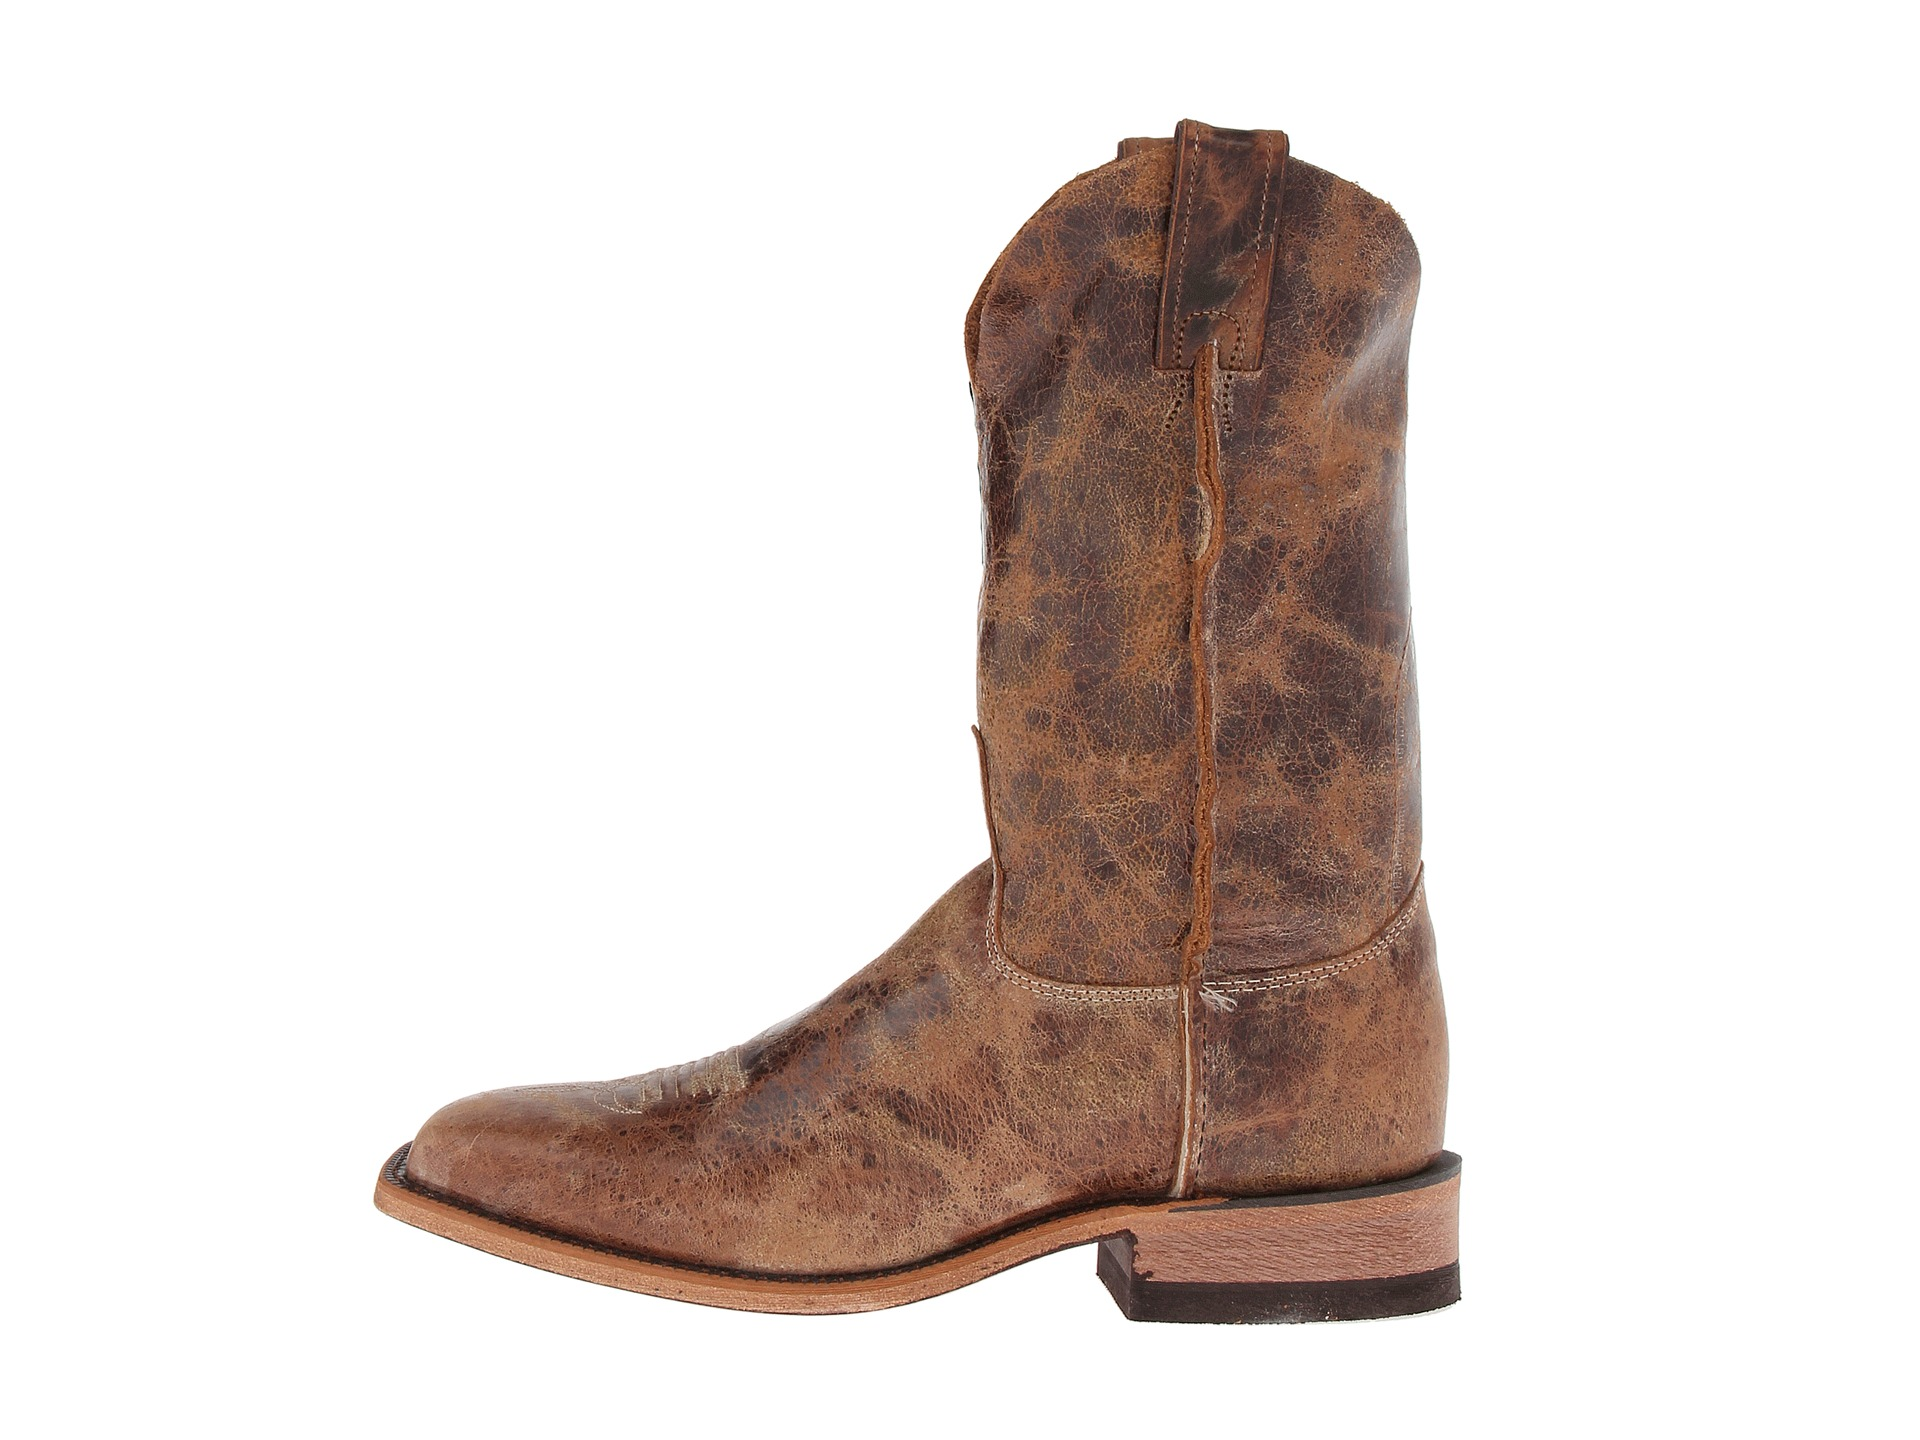 JUSTIN MEN'S CRACKED BROWN BENT RAIL BOOTS WITH CRACKED BLACK TOP